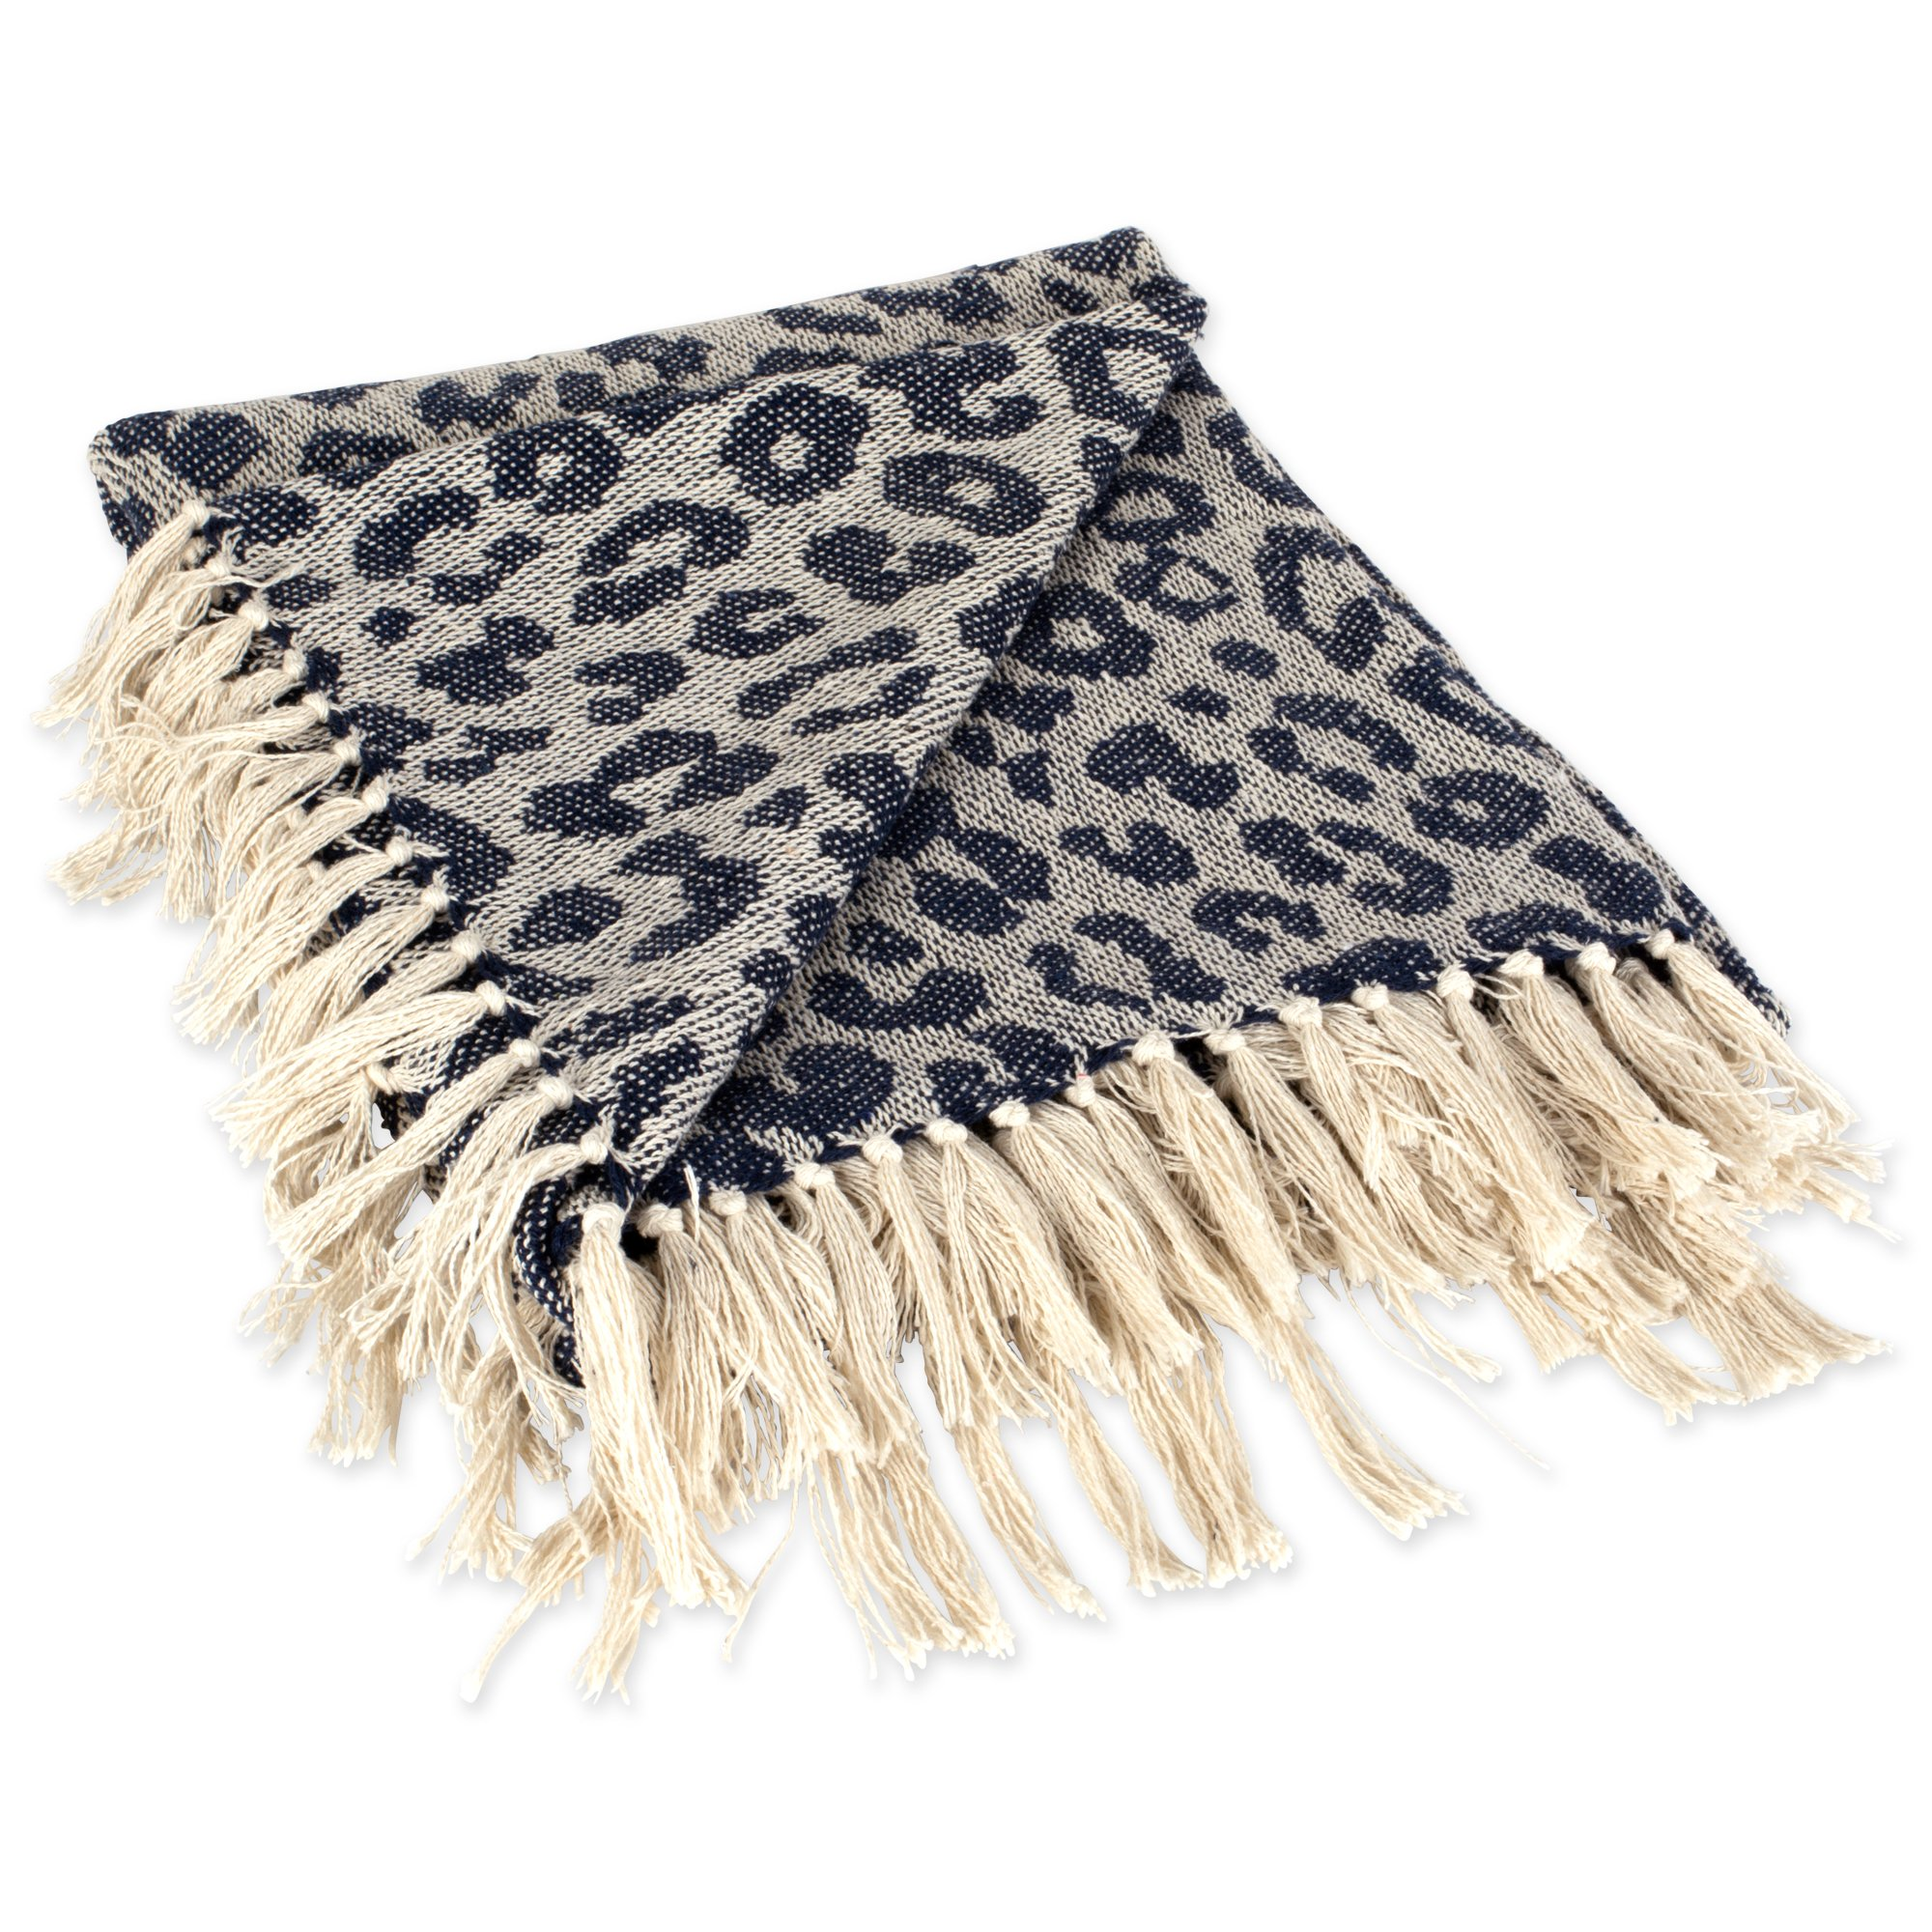 DII CAMZ38919 Modern Cotton Luxury Leopard Print Blanket Throw with Fringe for Chair, Couch, Picnic, Camping, Beach, and Everyday, 50 x 60, Blue by DII